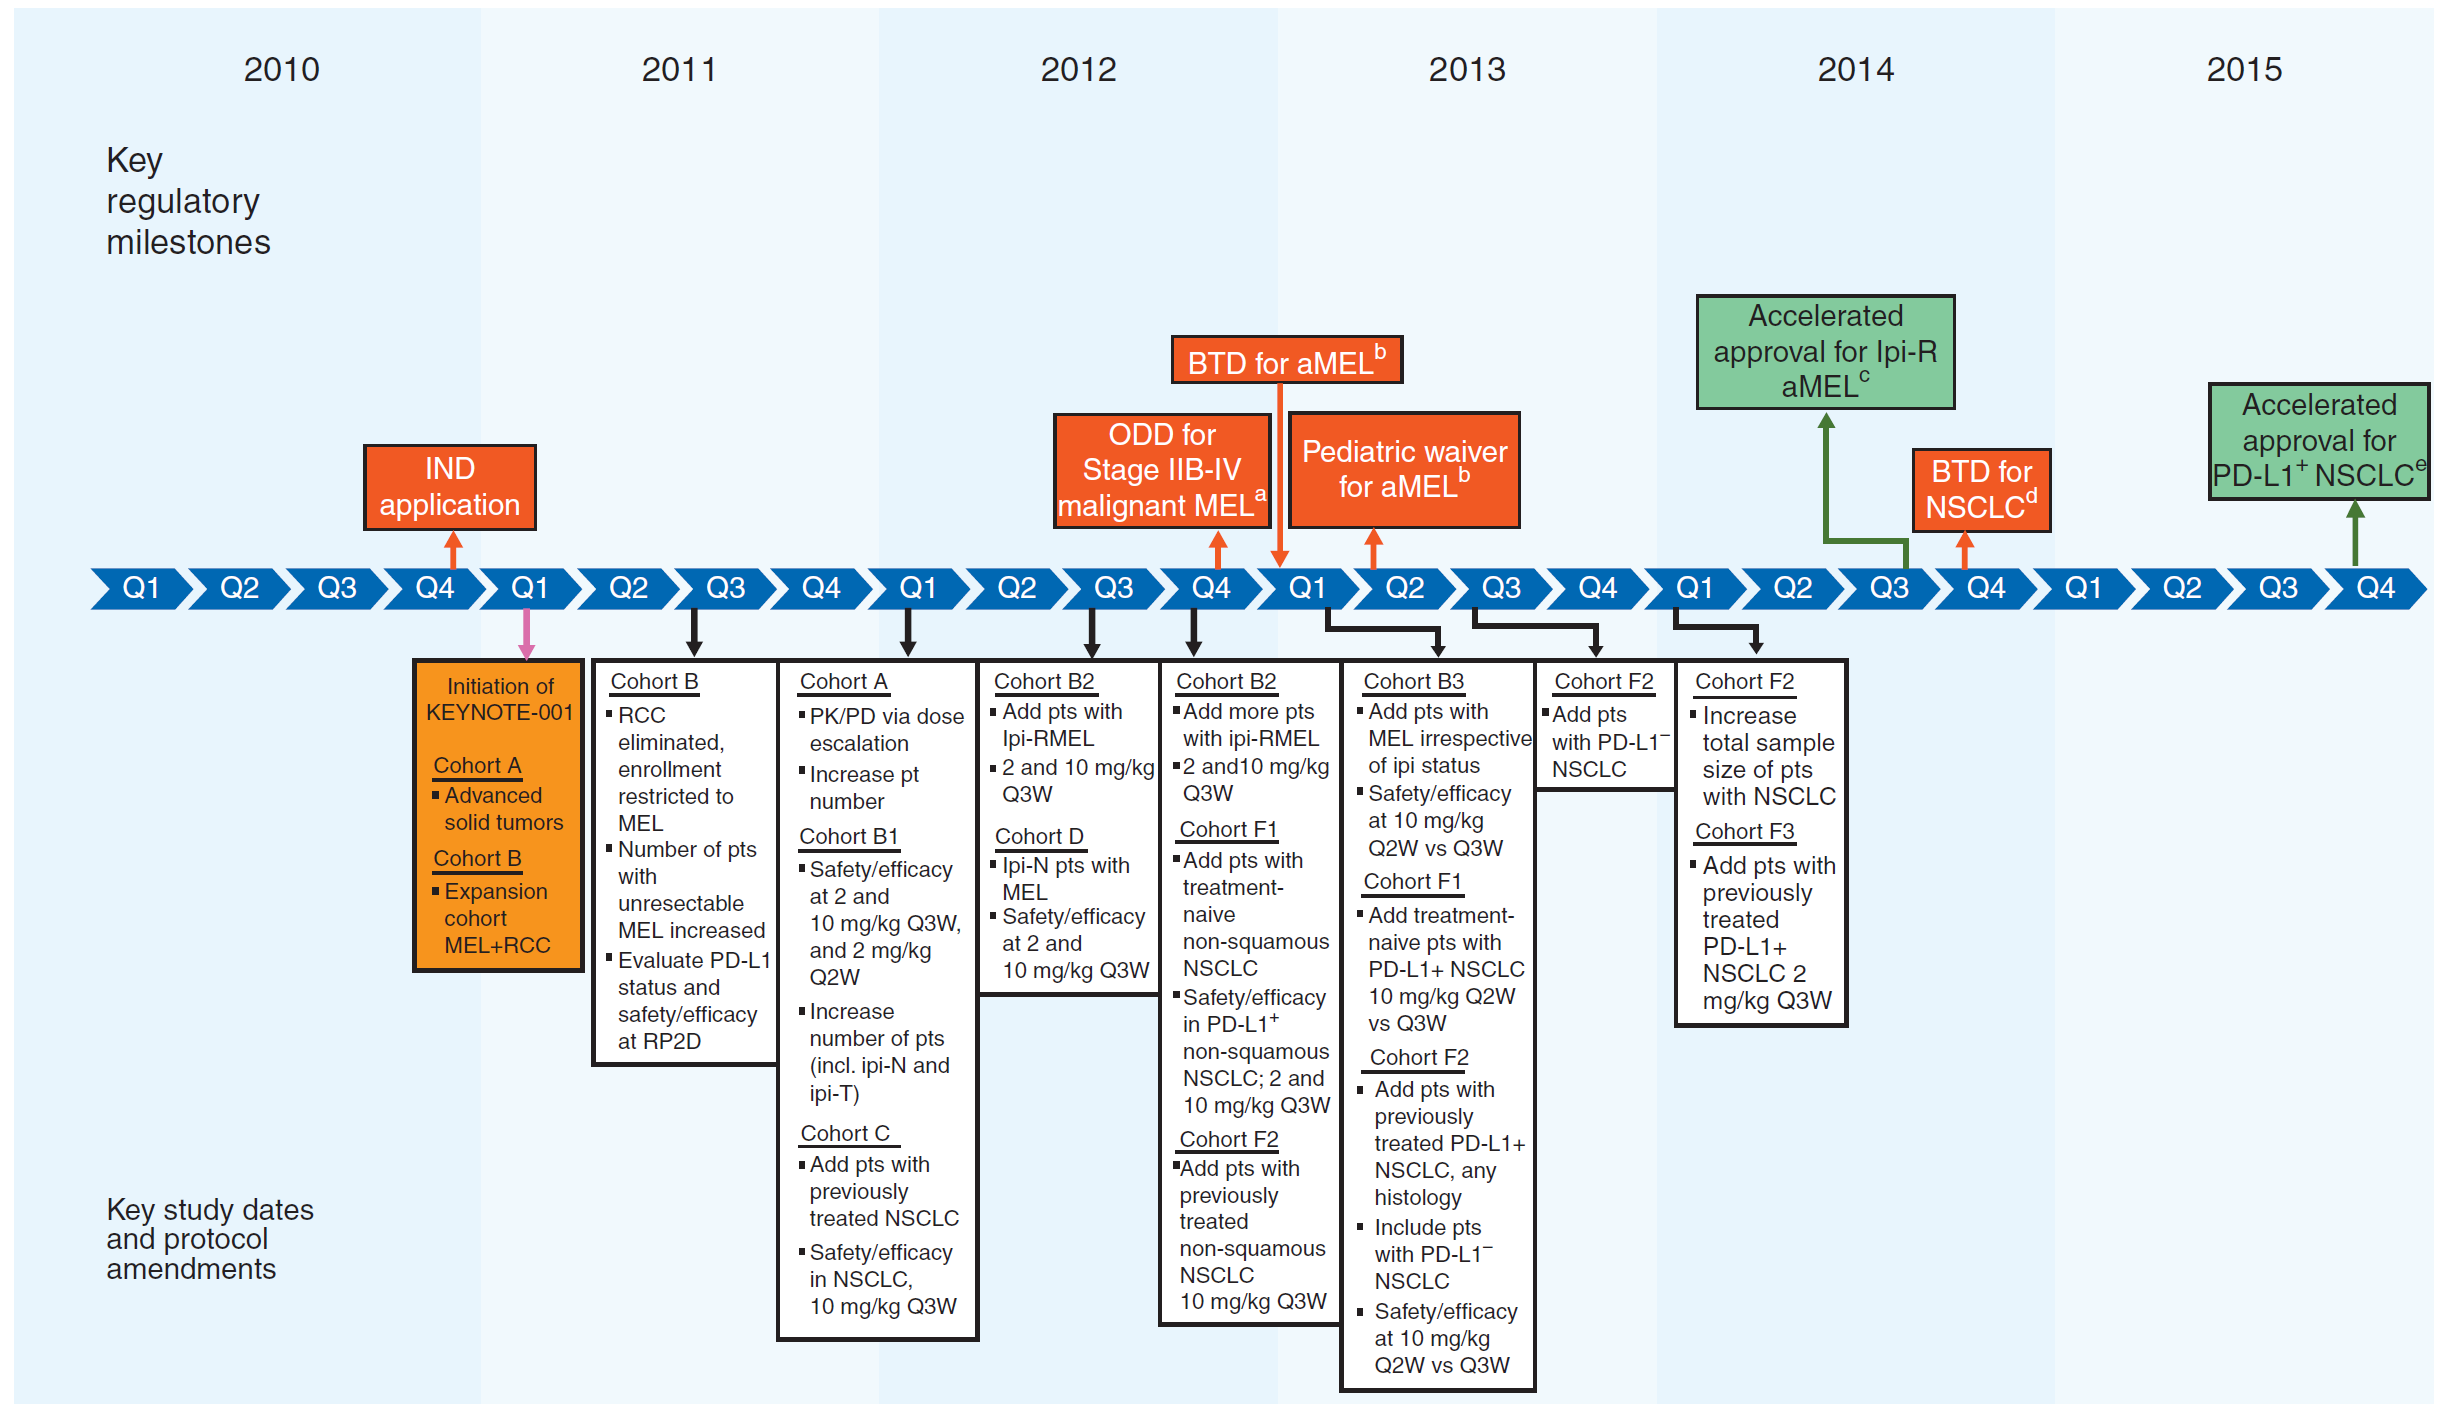 Figure 1: Timeline of key study design elements (KEYNOTE-001) and US FDA regulatory milestones (taken from Kang et al., Pembrolizumab KEYNOTE-001: an adaptive study leading to accelerated approval for two indications and a companion diagnostic, Annals of Oncology, Vol. 28 (6), 2017, 1388-98)